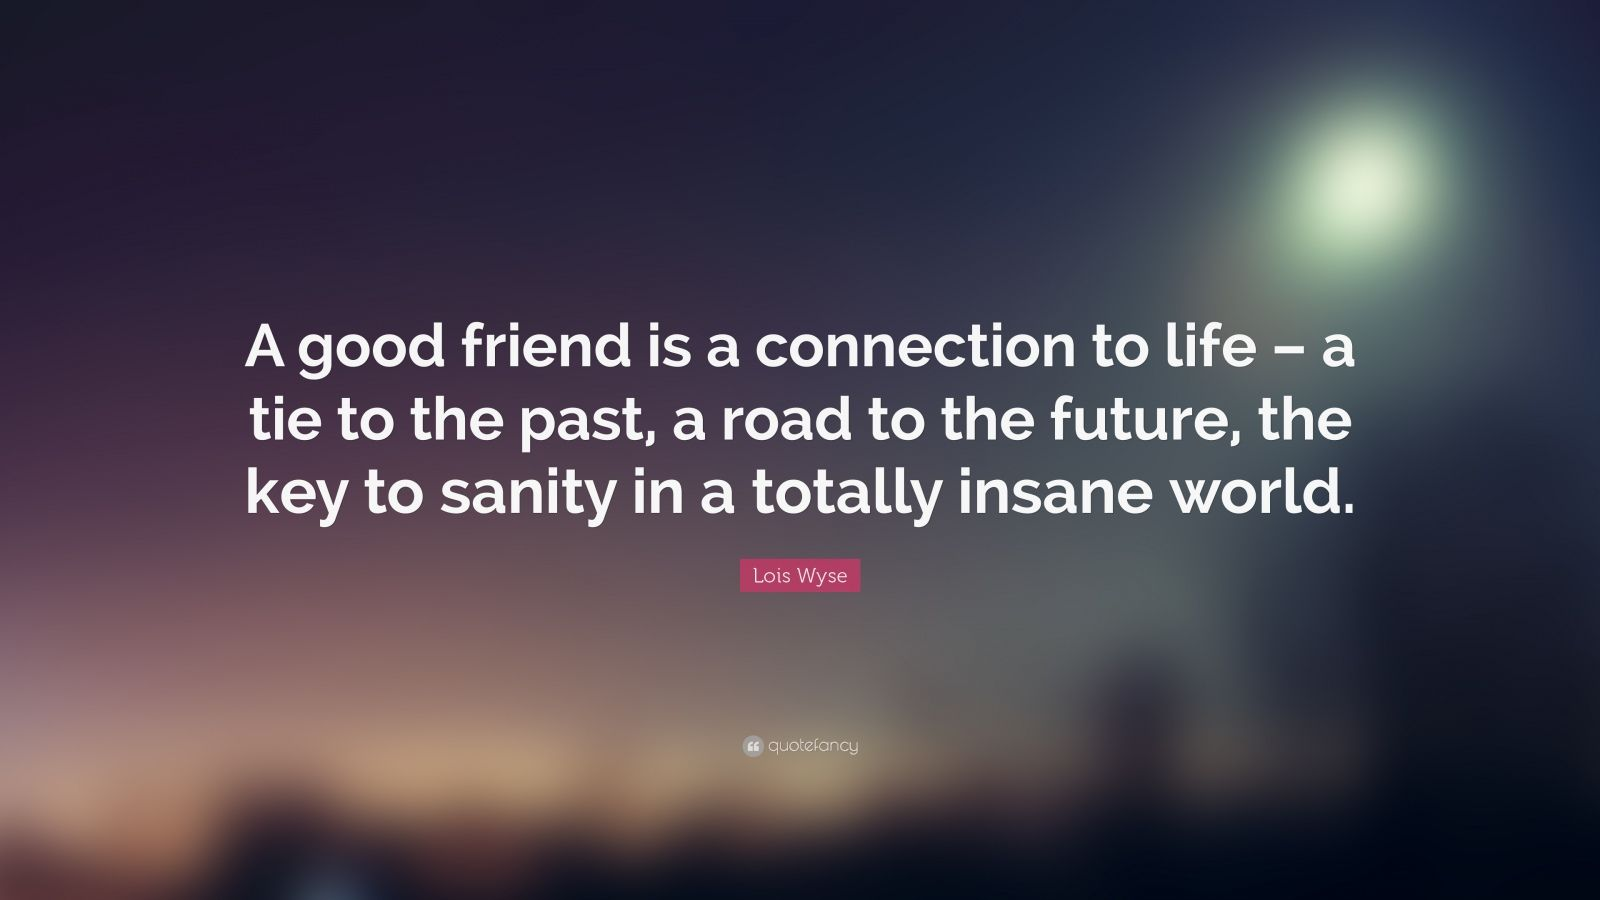 """Lois Wyse Quote: """"A good friend is a connection to life – a tie to the past, a road to the future, the key to sanity in a totally insane world."""""""